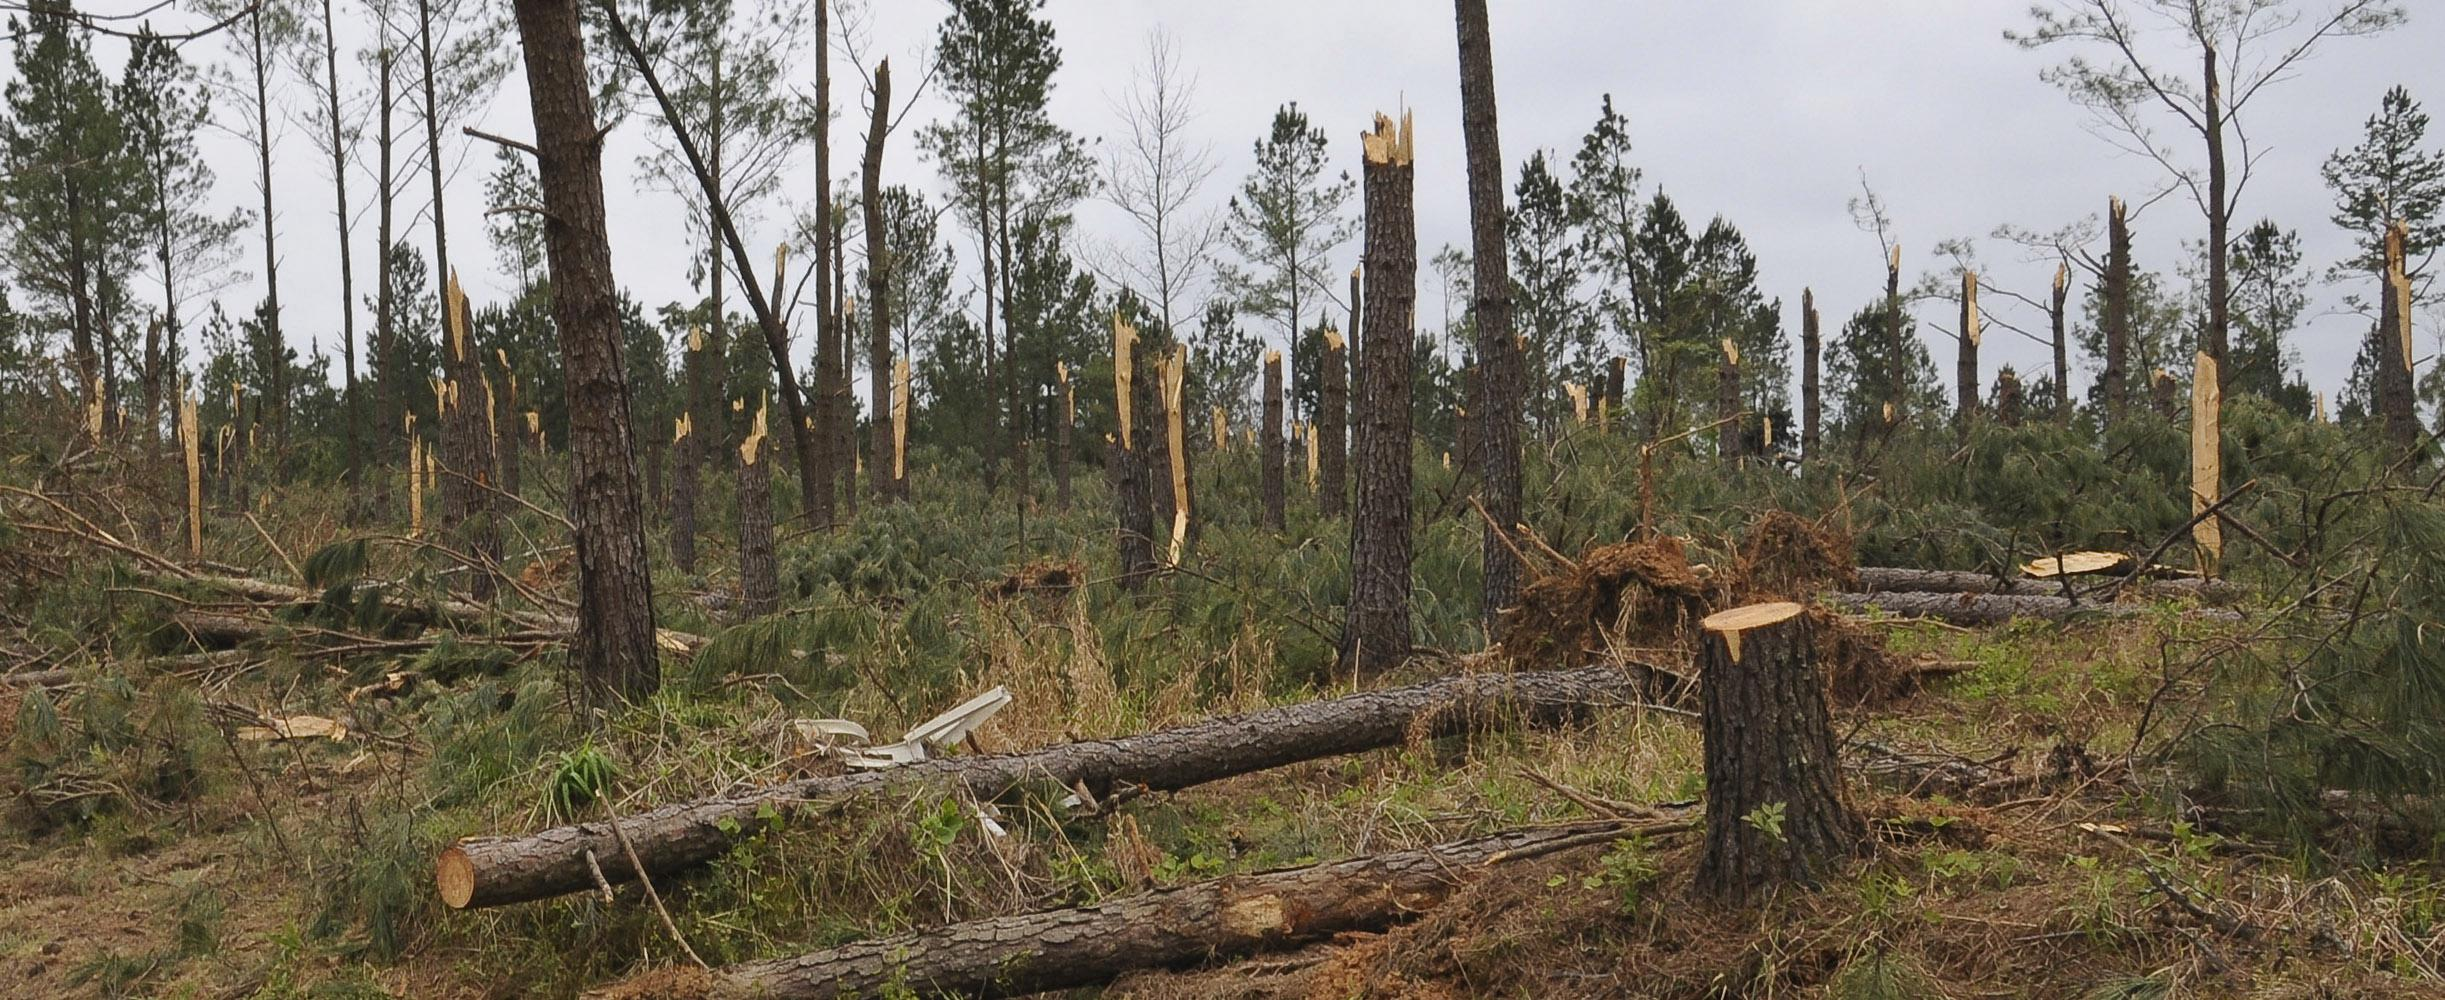 Timber was heavily damaged in Choctaw County. This photograph was taken near the Weir community on April 30. Photo by Scott Corey.